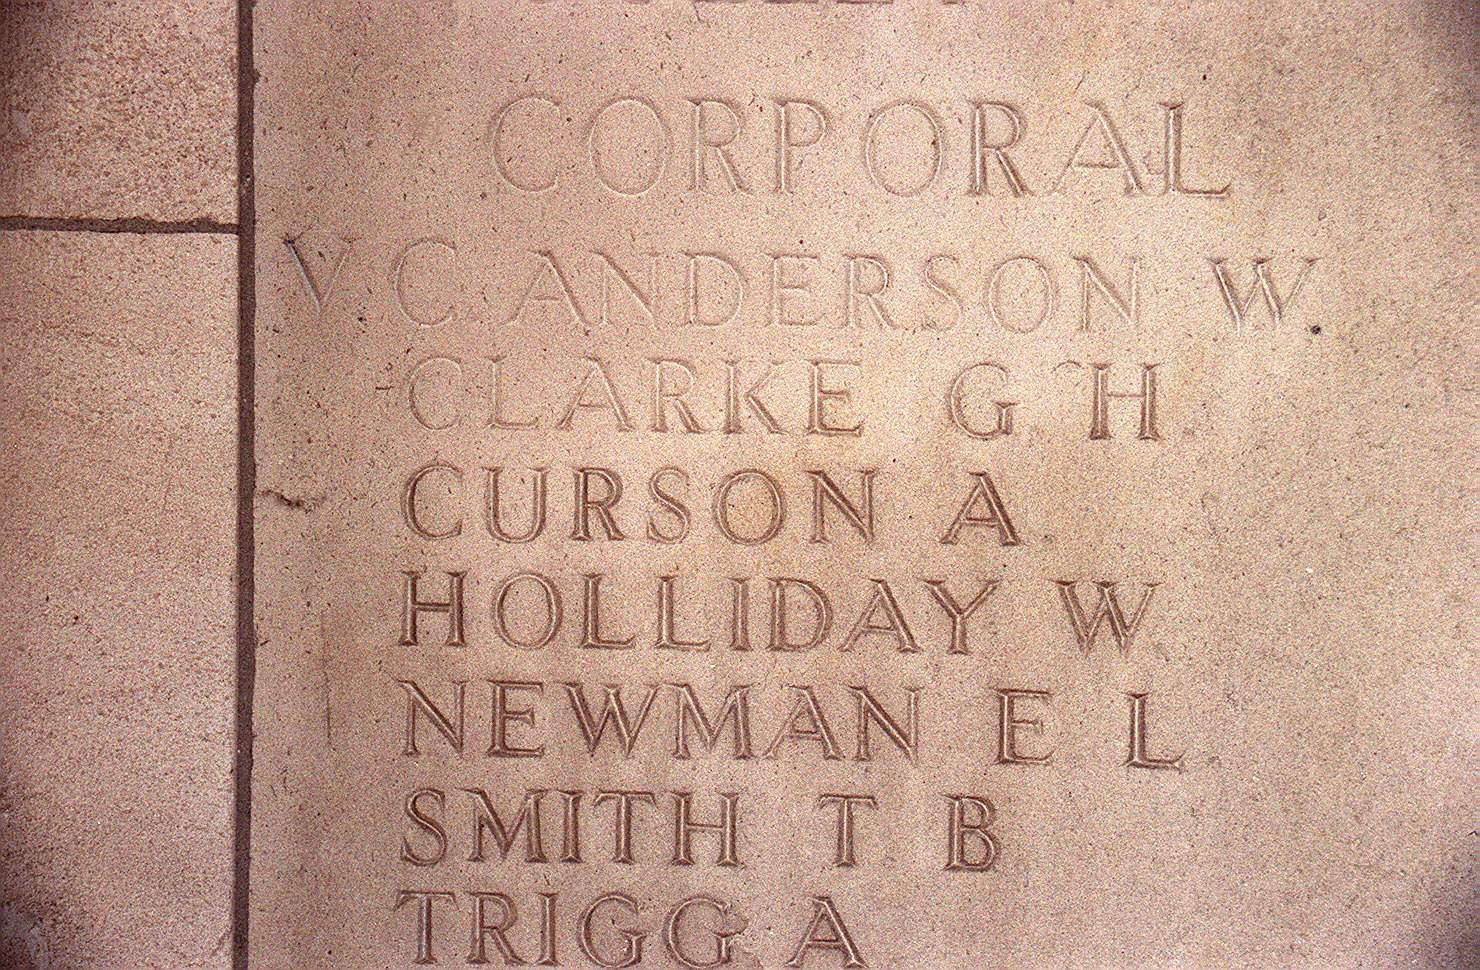 The panel with Corporal Arthur Curson's name carved on it